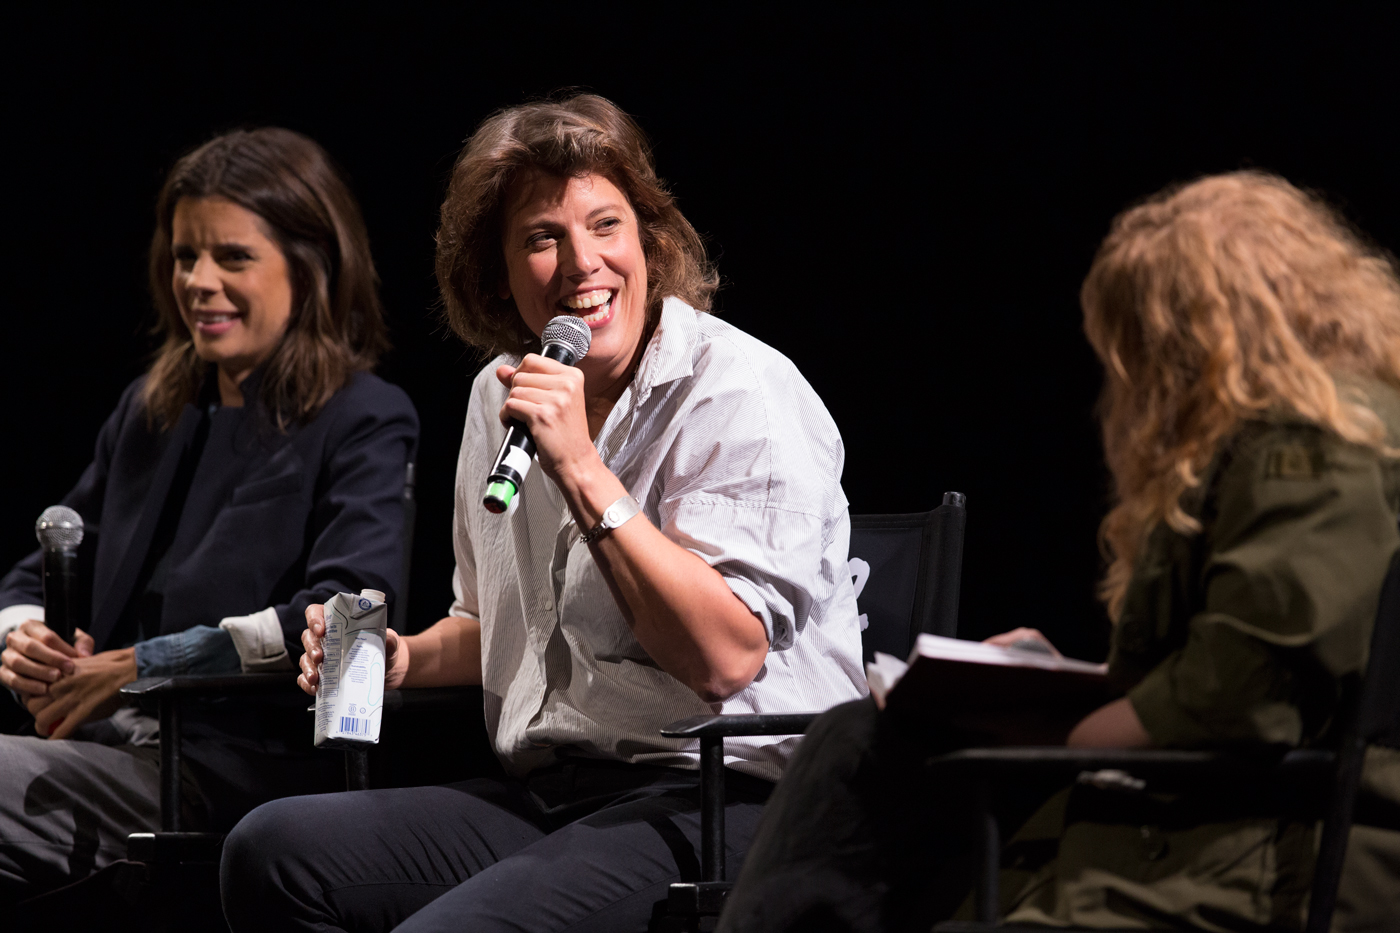 Carolyn Taylor speaking at a Baroness Von Sketch Show panel at the TIFF Bell Lightbox for Just For Laughs 42.